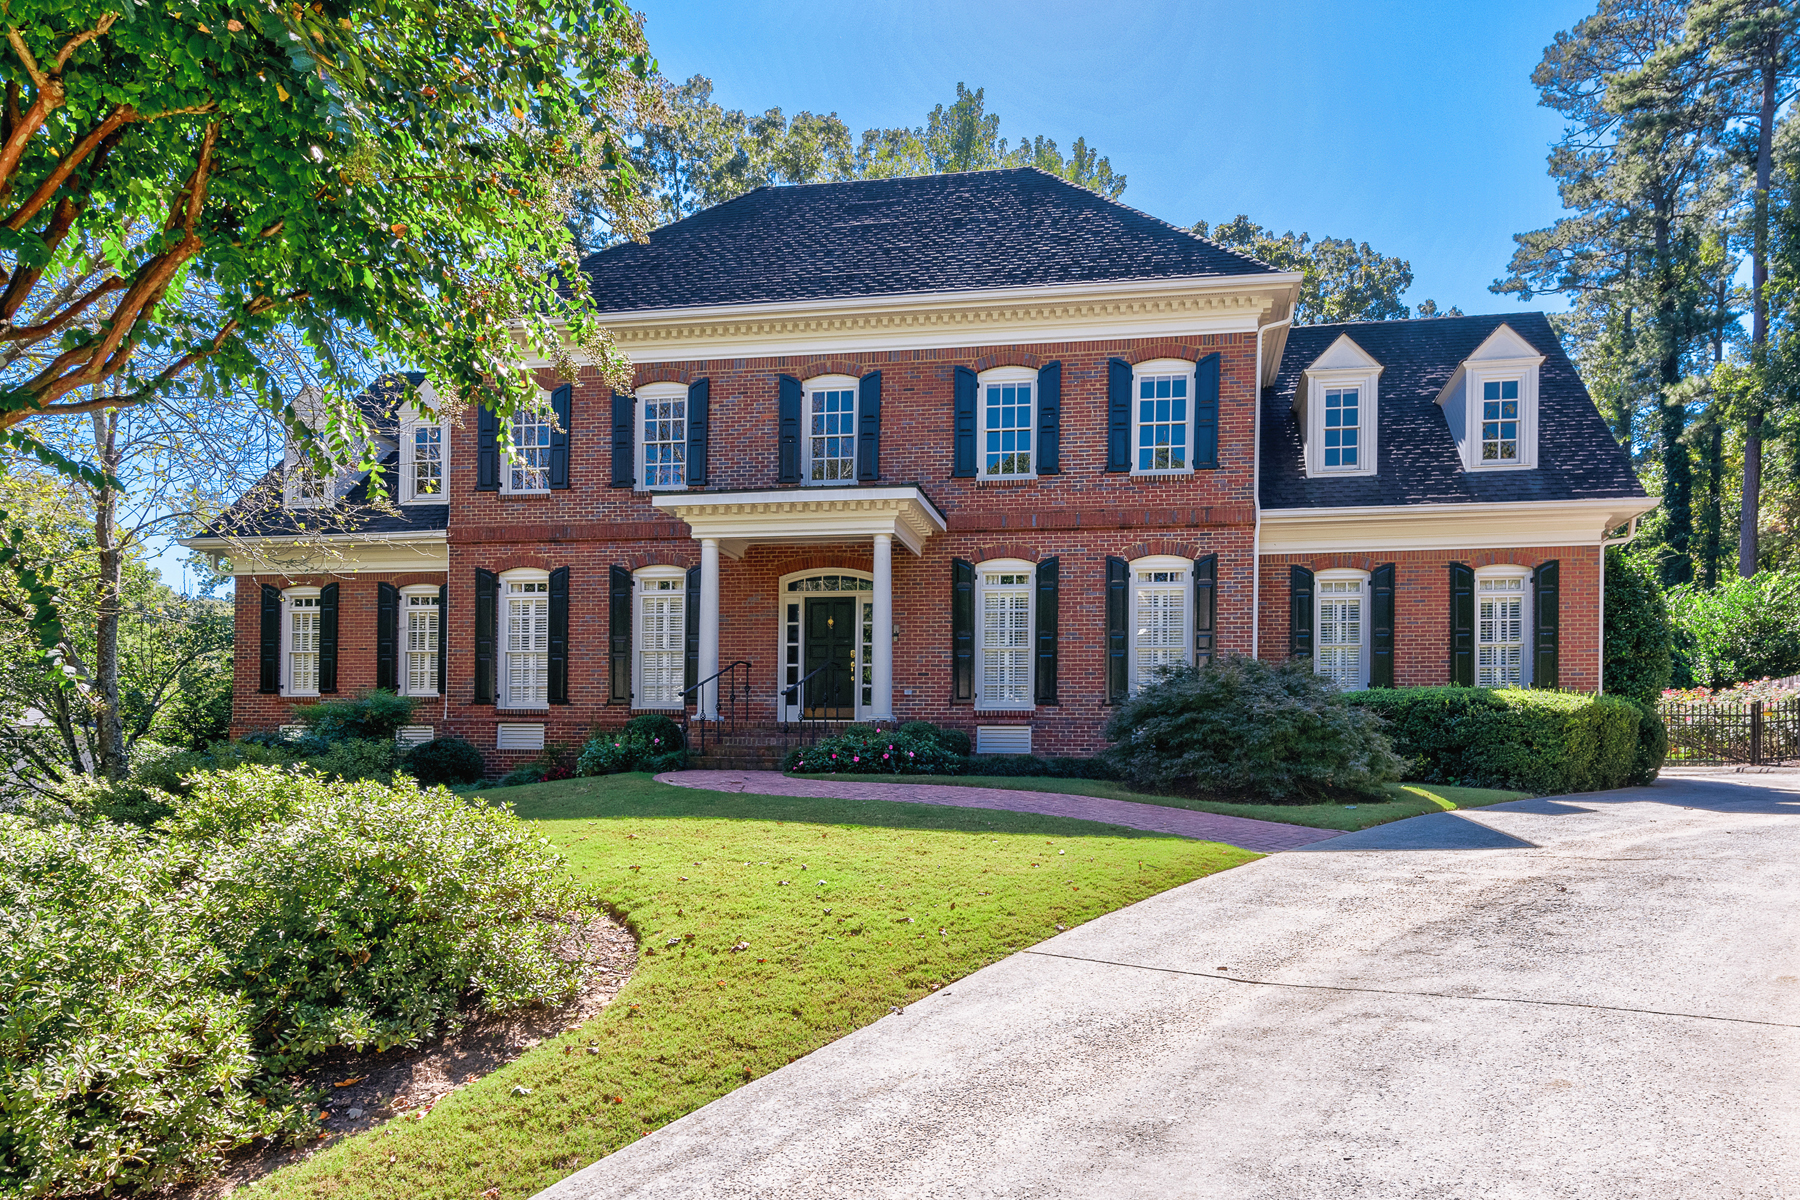 Single Family Home for Sale at Classic Property With Open Interior In A Wonderful Neighborhood 1414 Wesley Walk NW Atlanta, Georgia 30327 United States